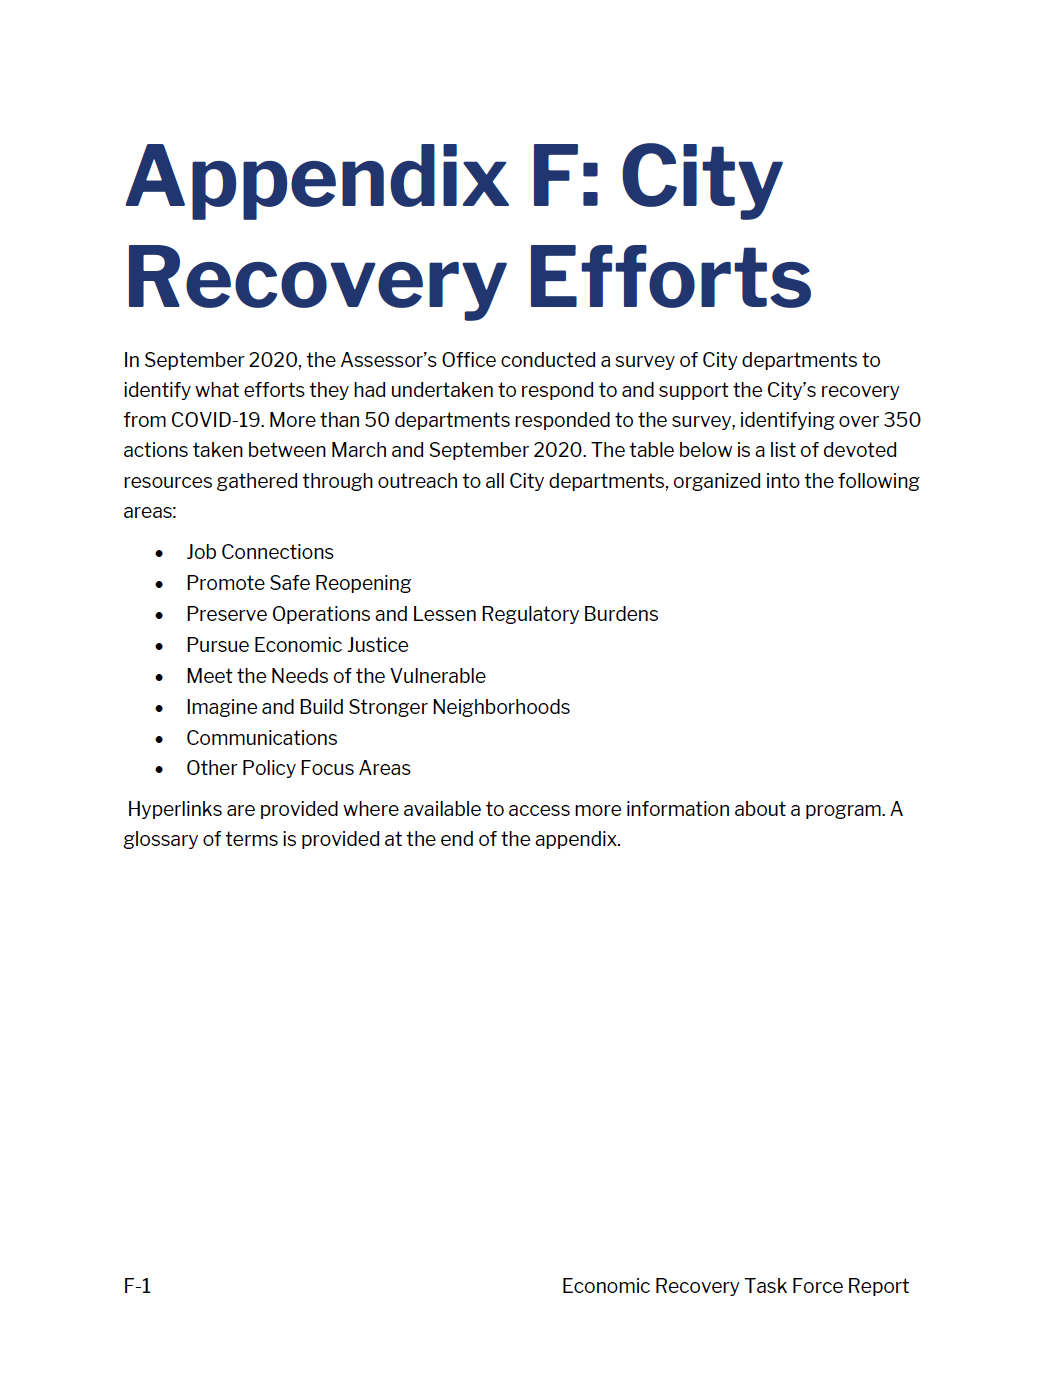 ERTF Appendix F - City Recovery Efforts